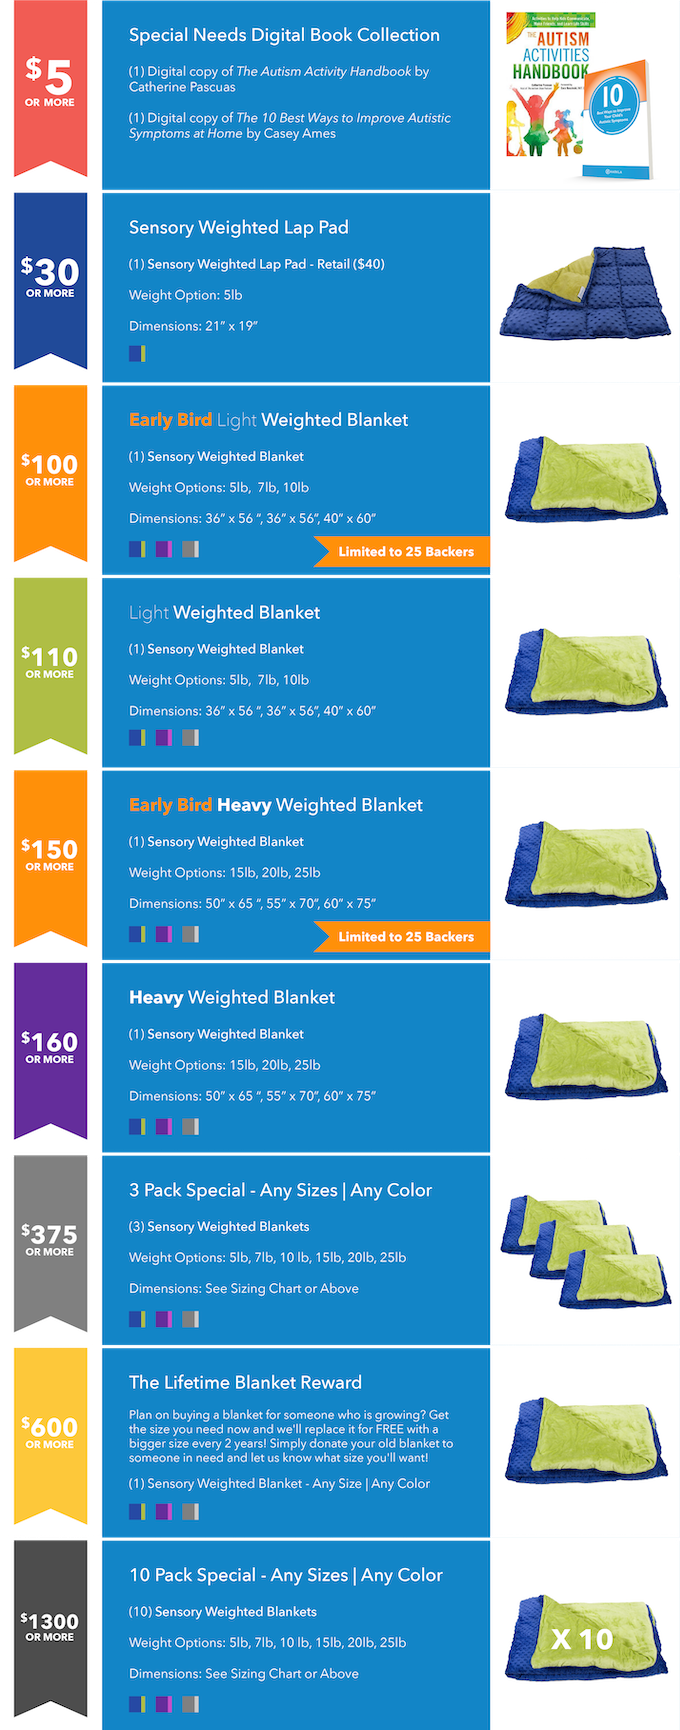 Weighted blankets for special needs by harkla by casey ames if you are wondering how to choose the right blanket for you or a loved one here are tables to help all the sizes and weights are available in all nvjuhfo Image collections